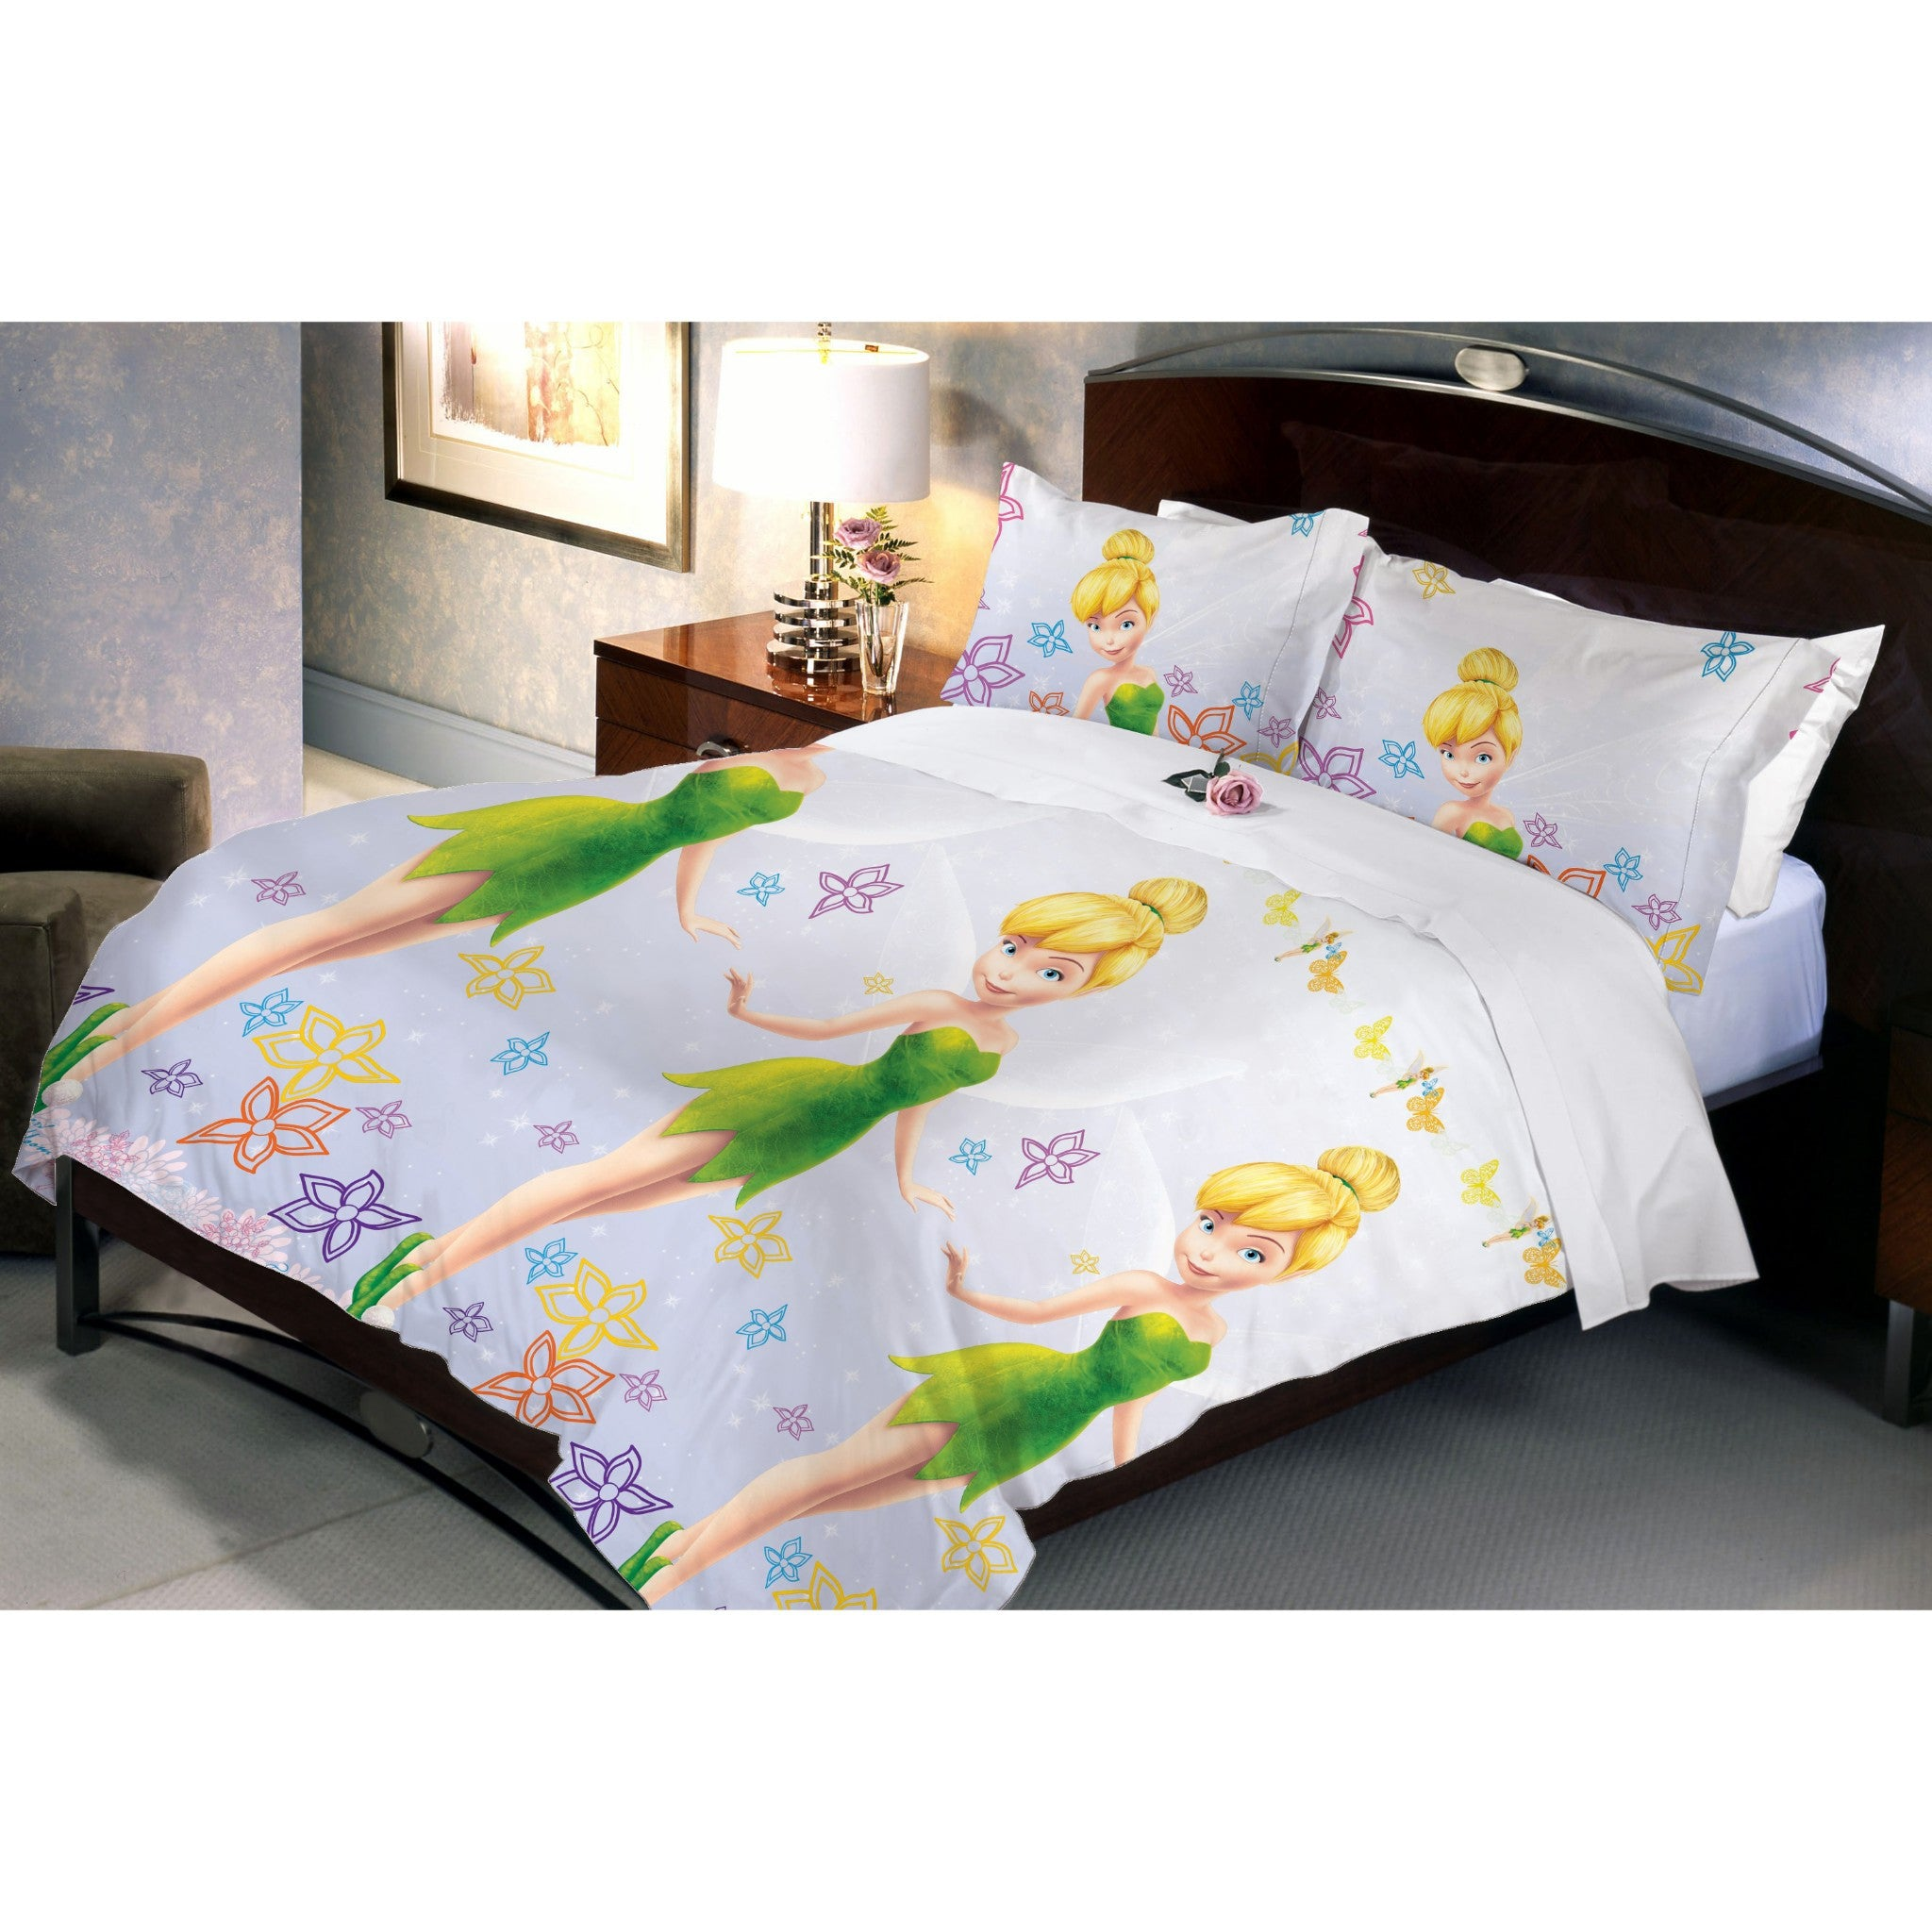 Disney Fairies Tinker Bell Bed Sheet And Pillow Covers & Queen Size - Über Urban Disney